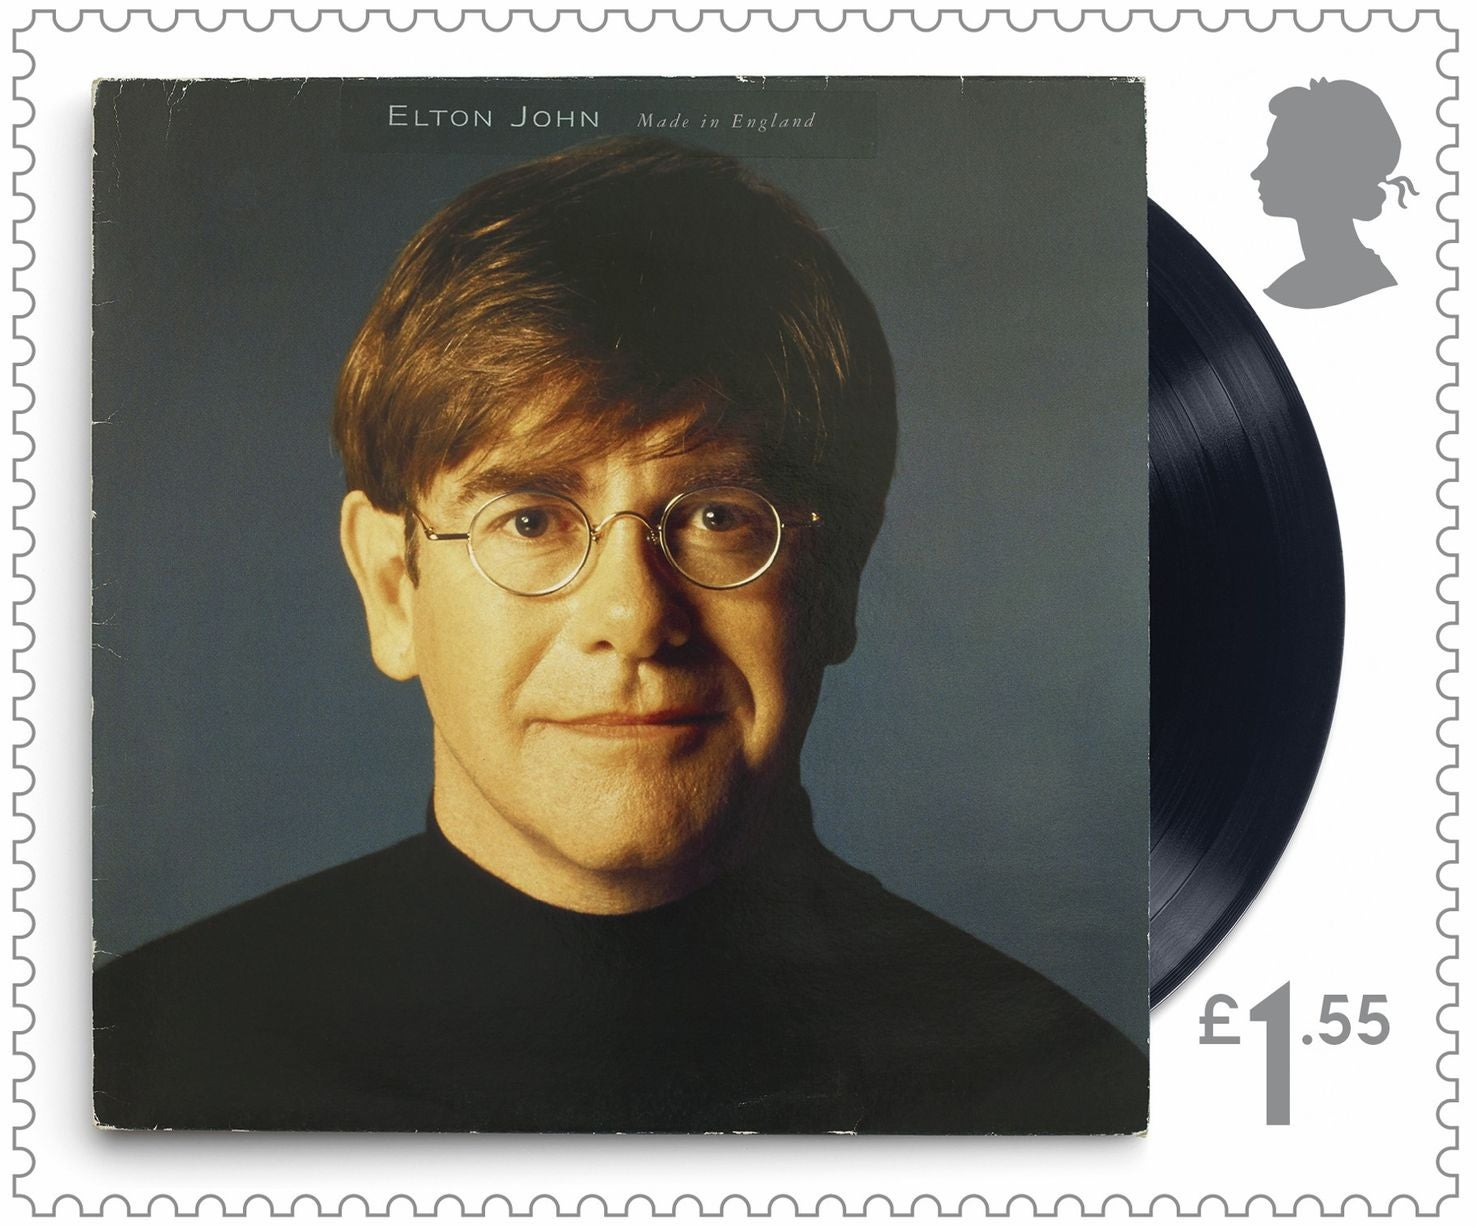 Sir Elton John's music celebrated in Royal Mail stamps   The